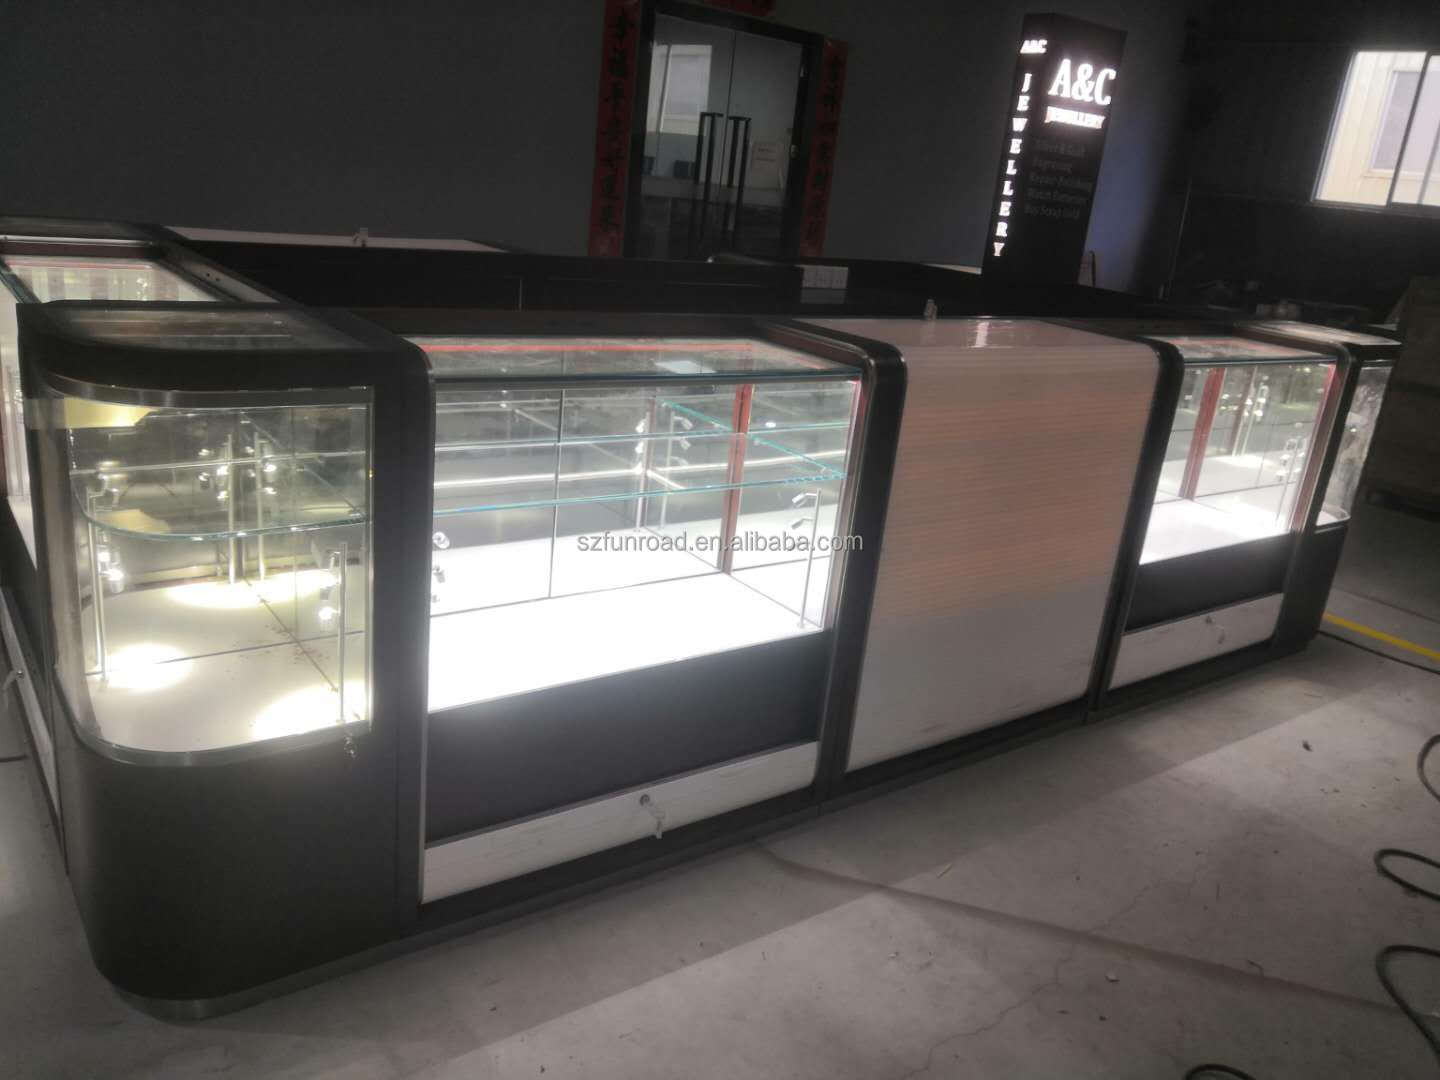 Custom design modern Glass and wooden jewelry display kiosk with rolling door